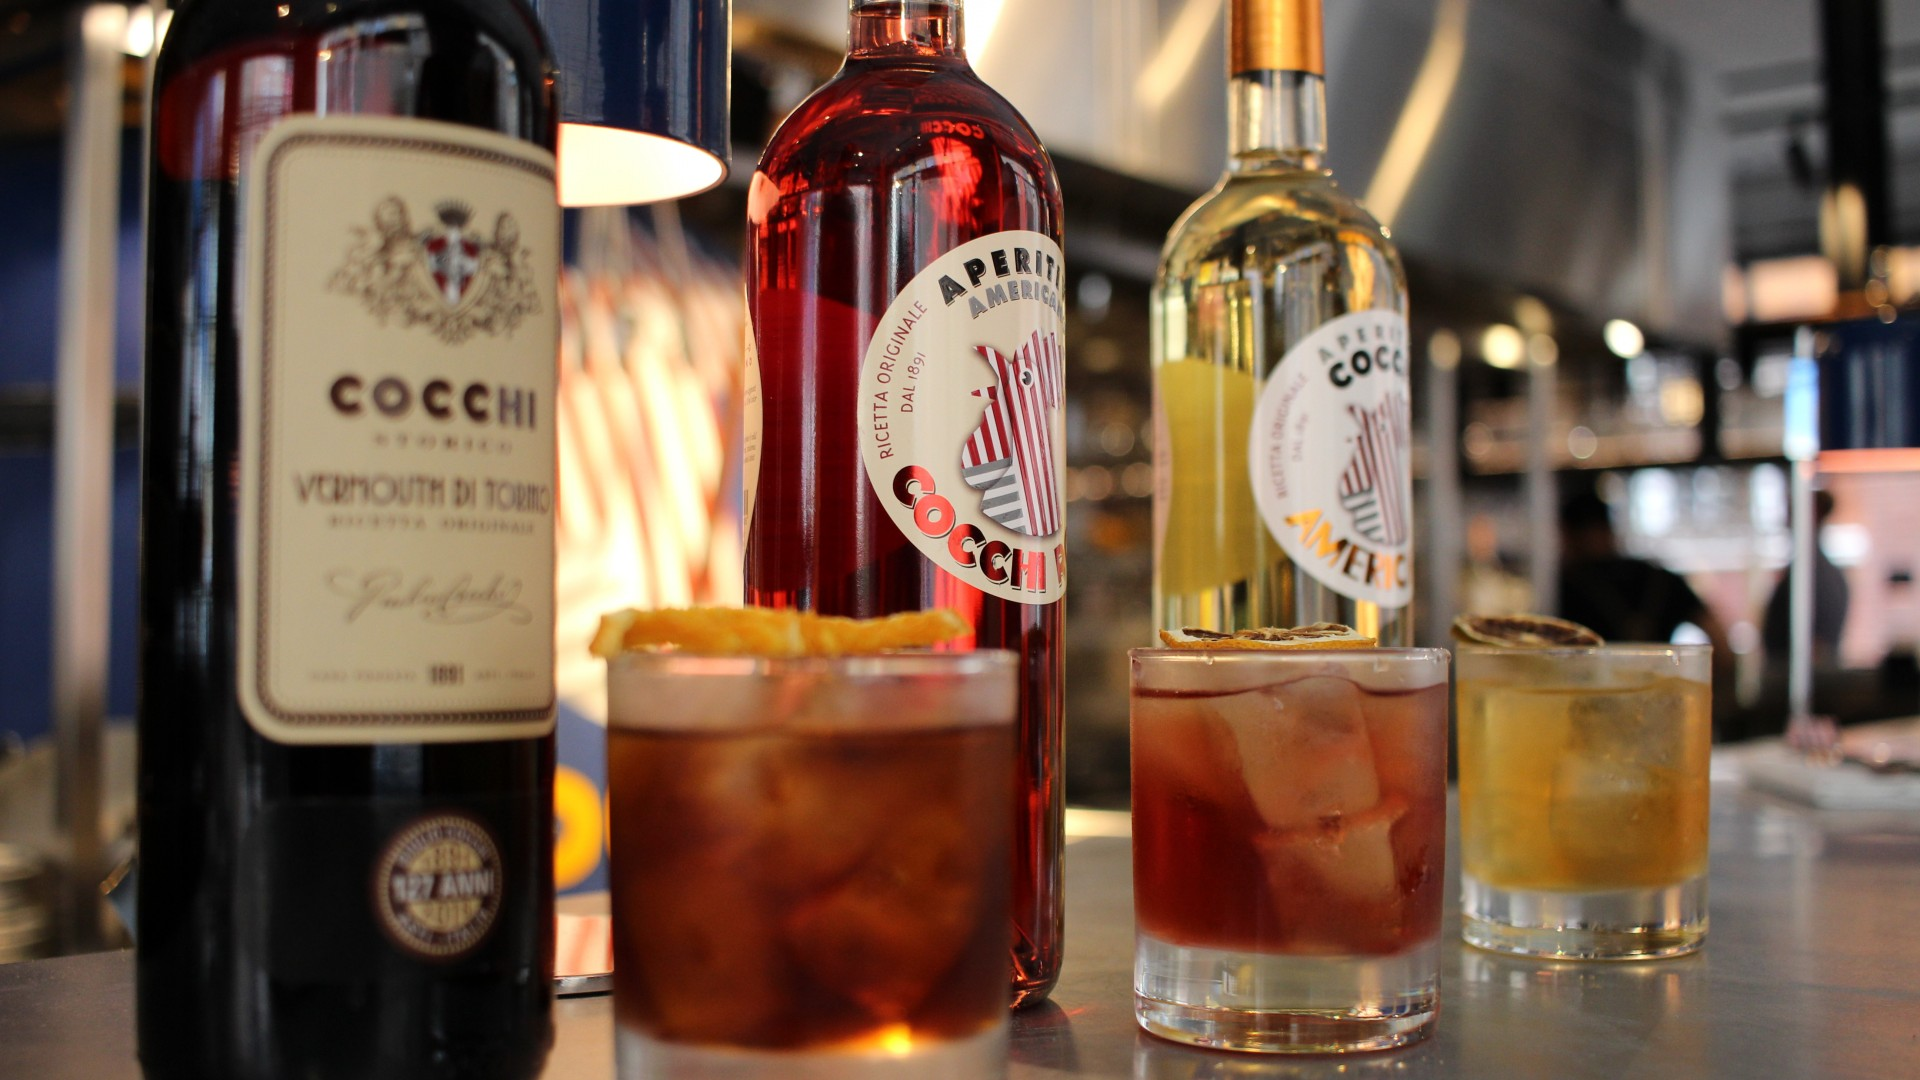 Cocchi Negroni Journey